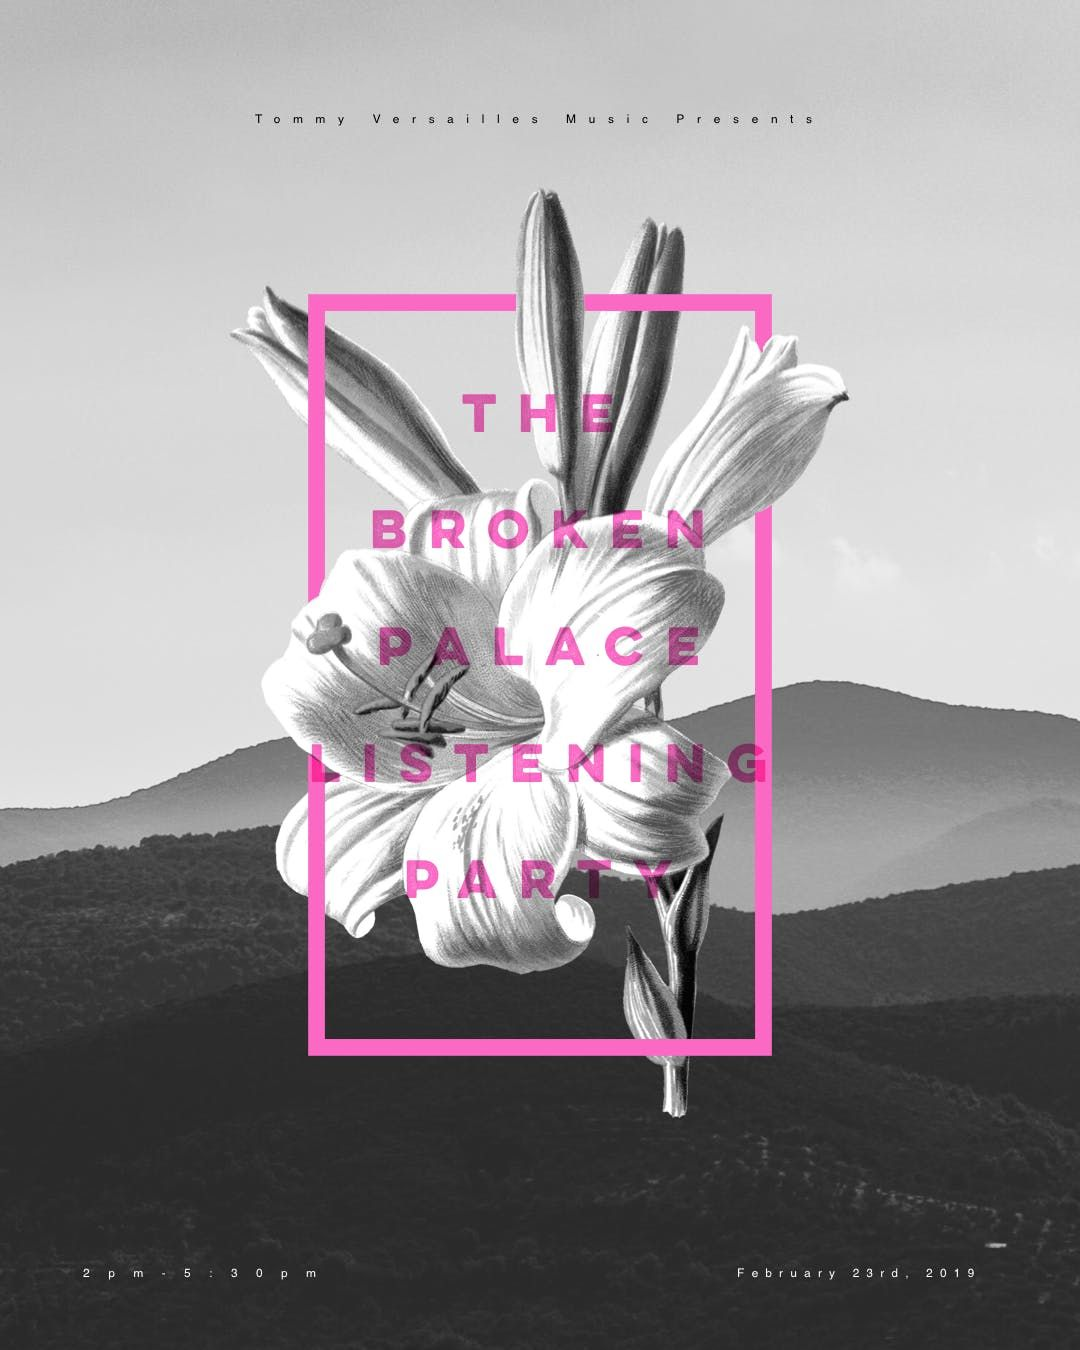 The Broken Palace EP Listening Party